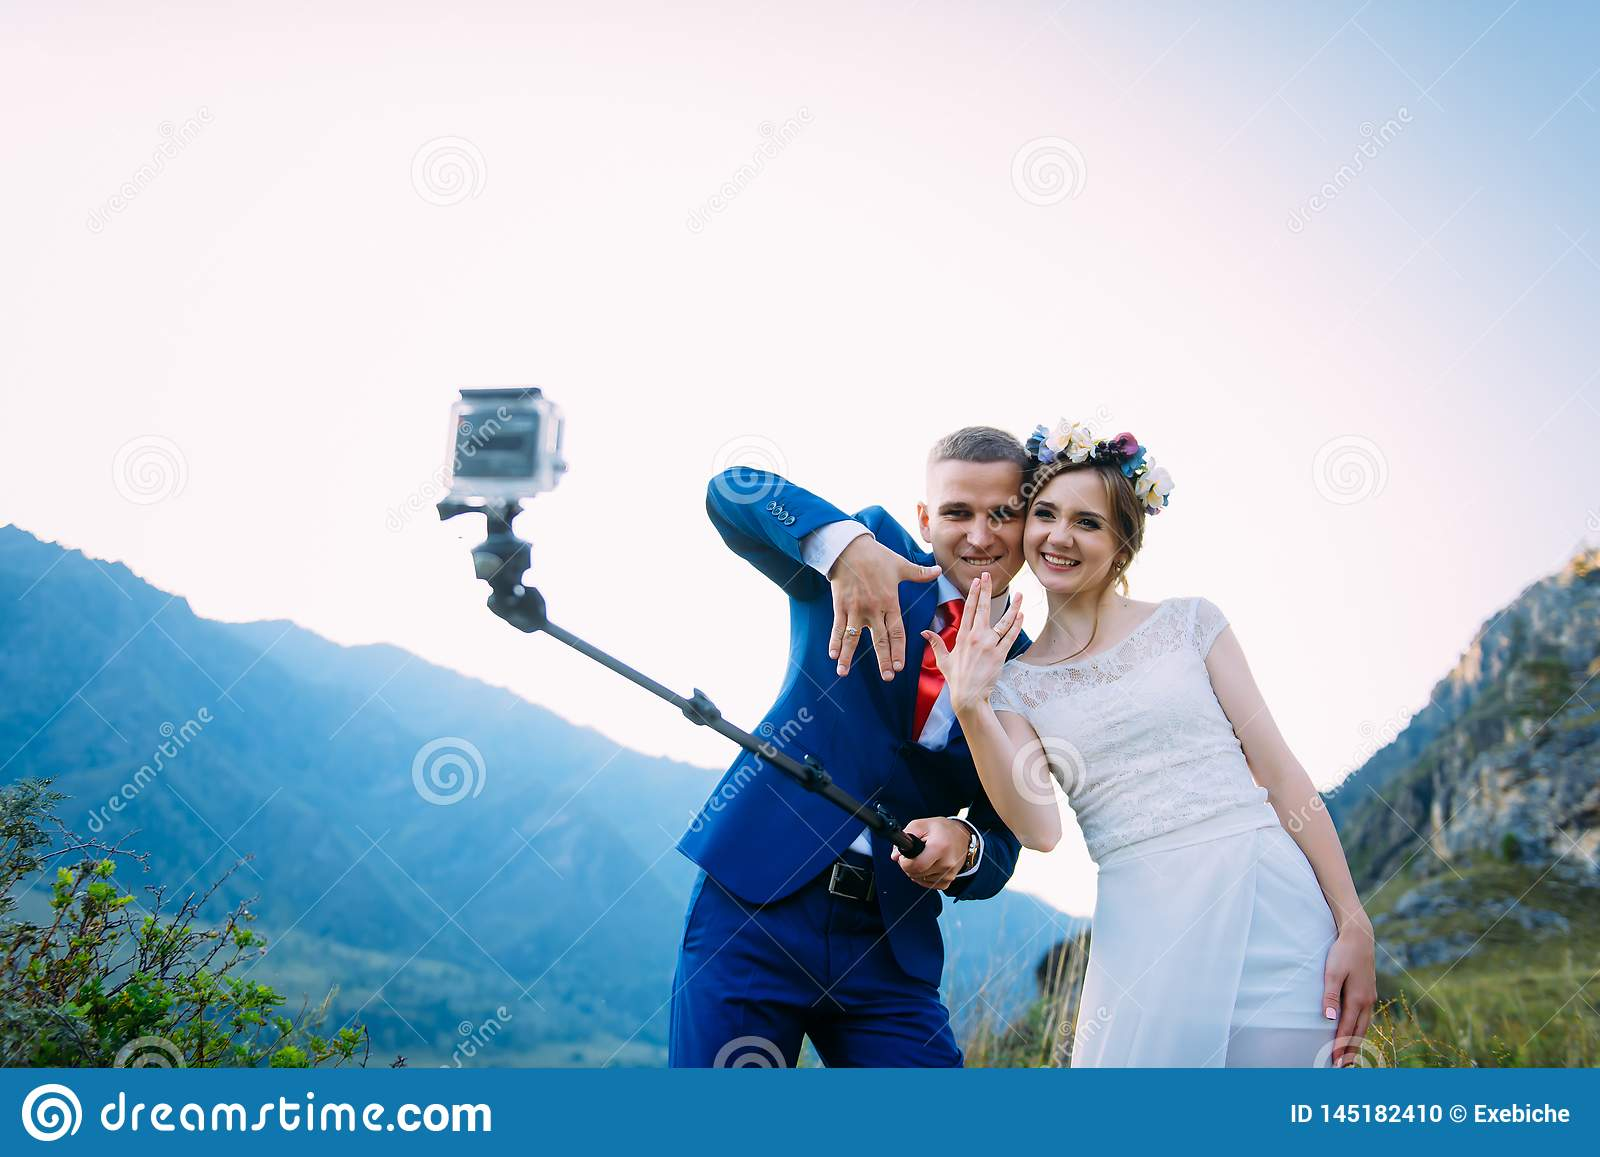 Beautiful young wedding couple making selfie on the background of mountains